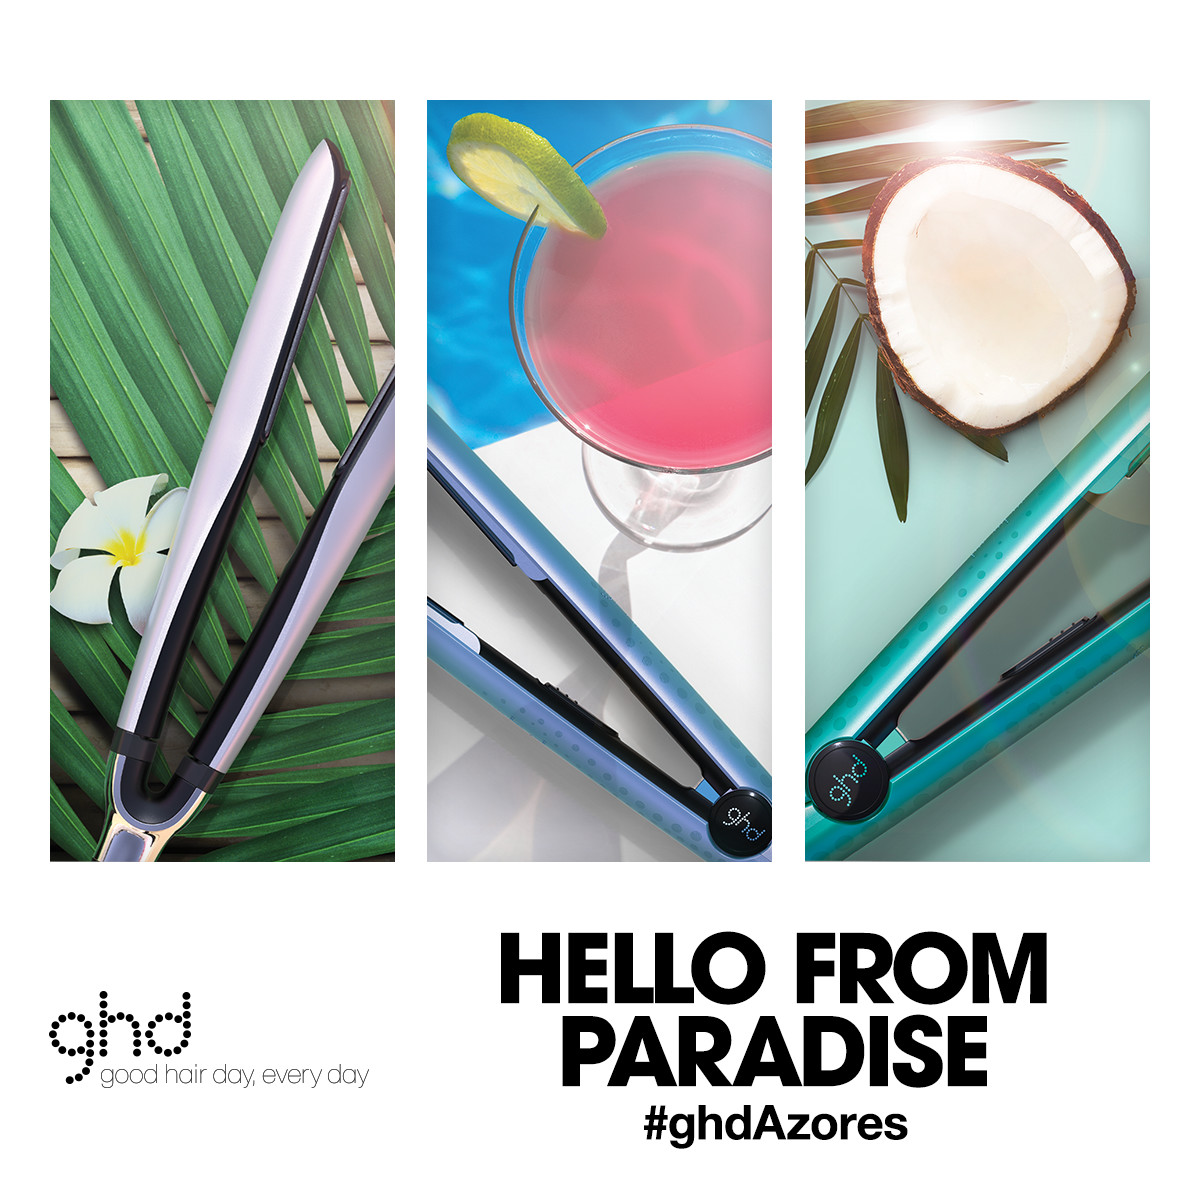 ghd Azores at Frontlinestyle Hair & Beauty